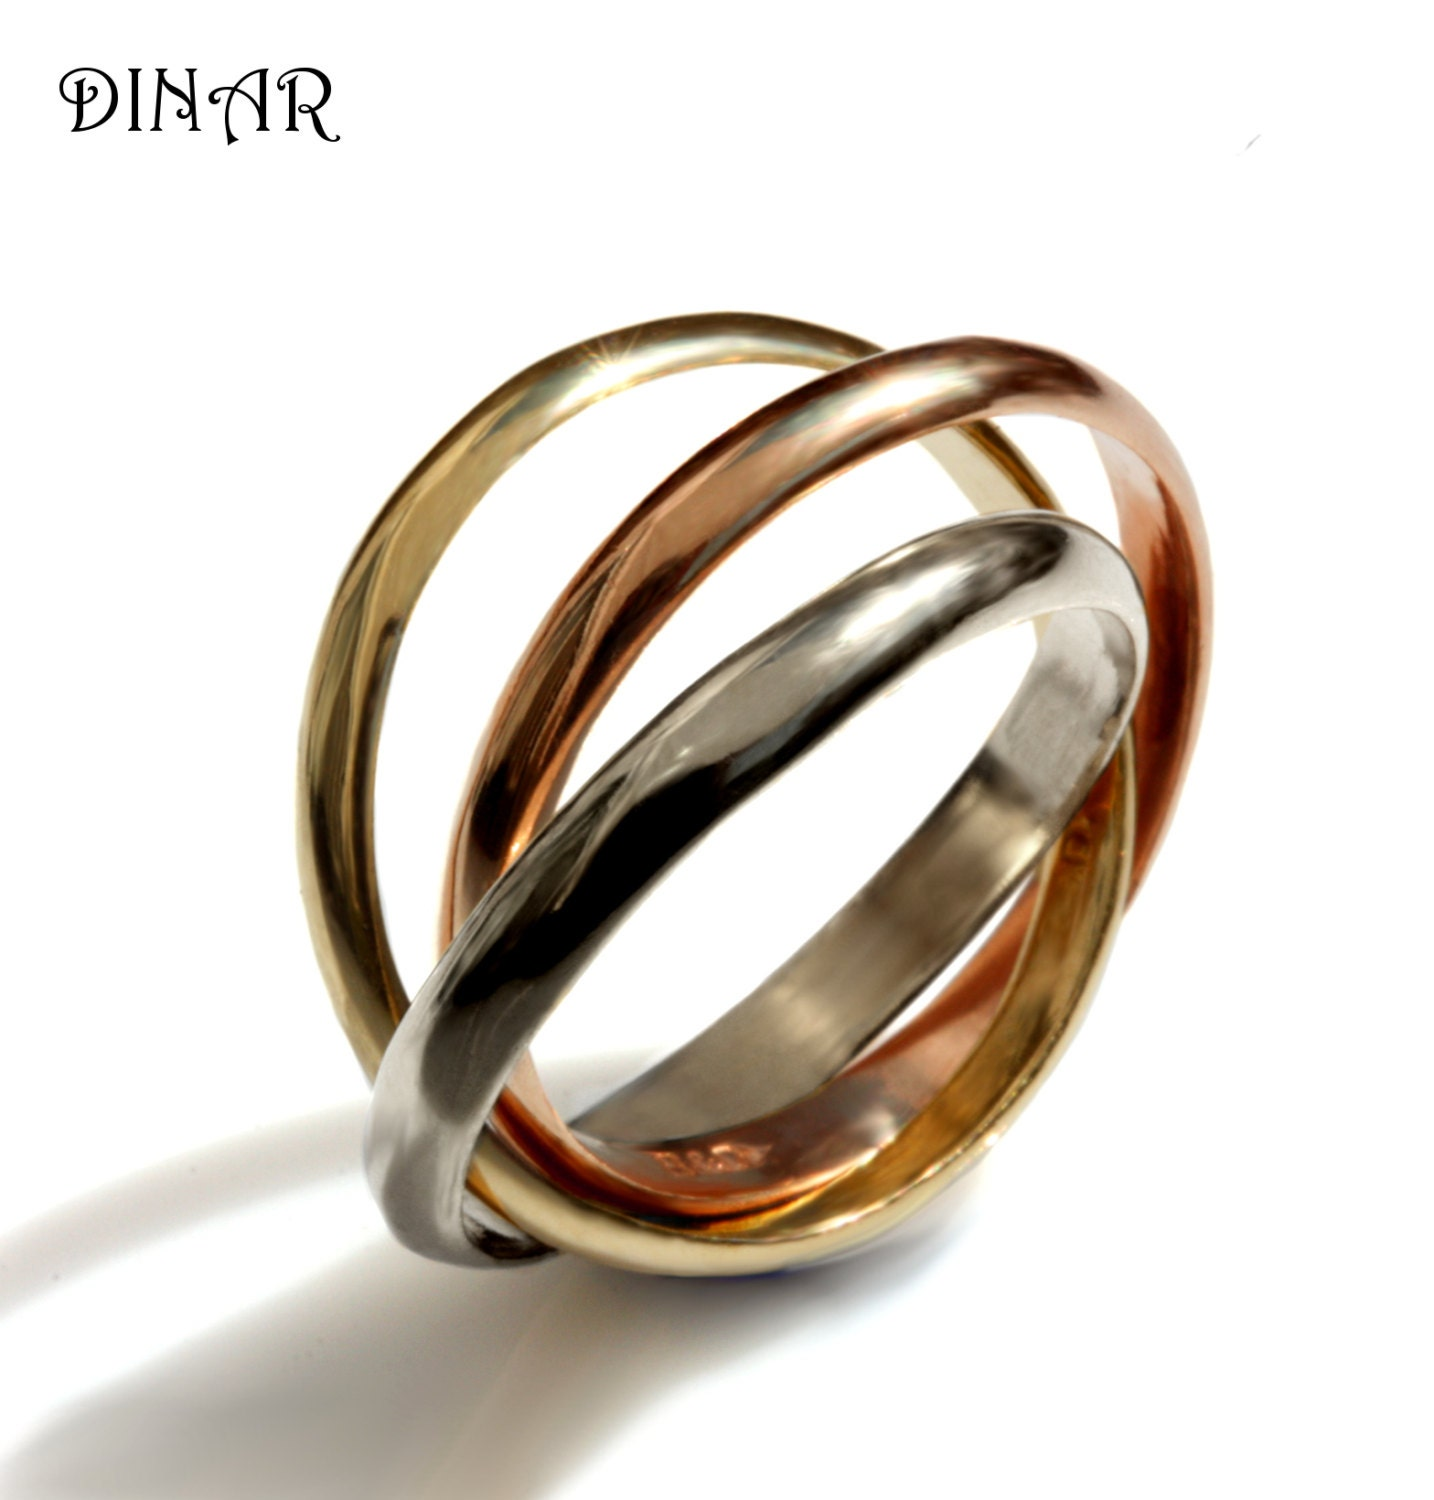 amazon rings and wedding piece the center engagement gold color com tri dp jewelry solid ring set world band